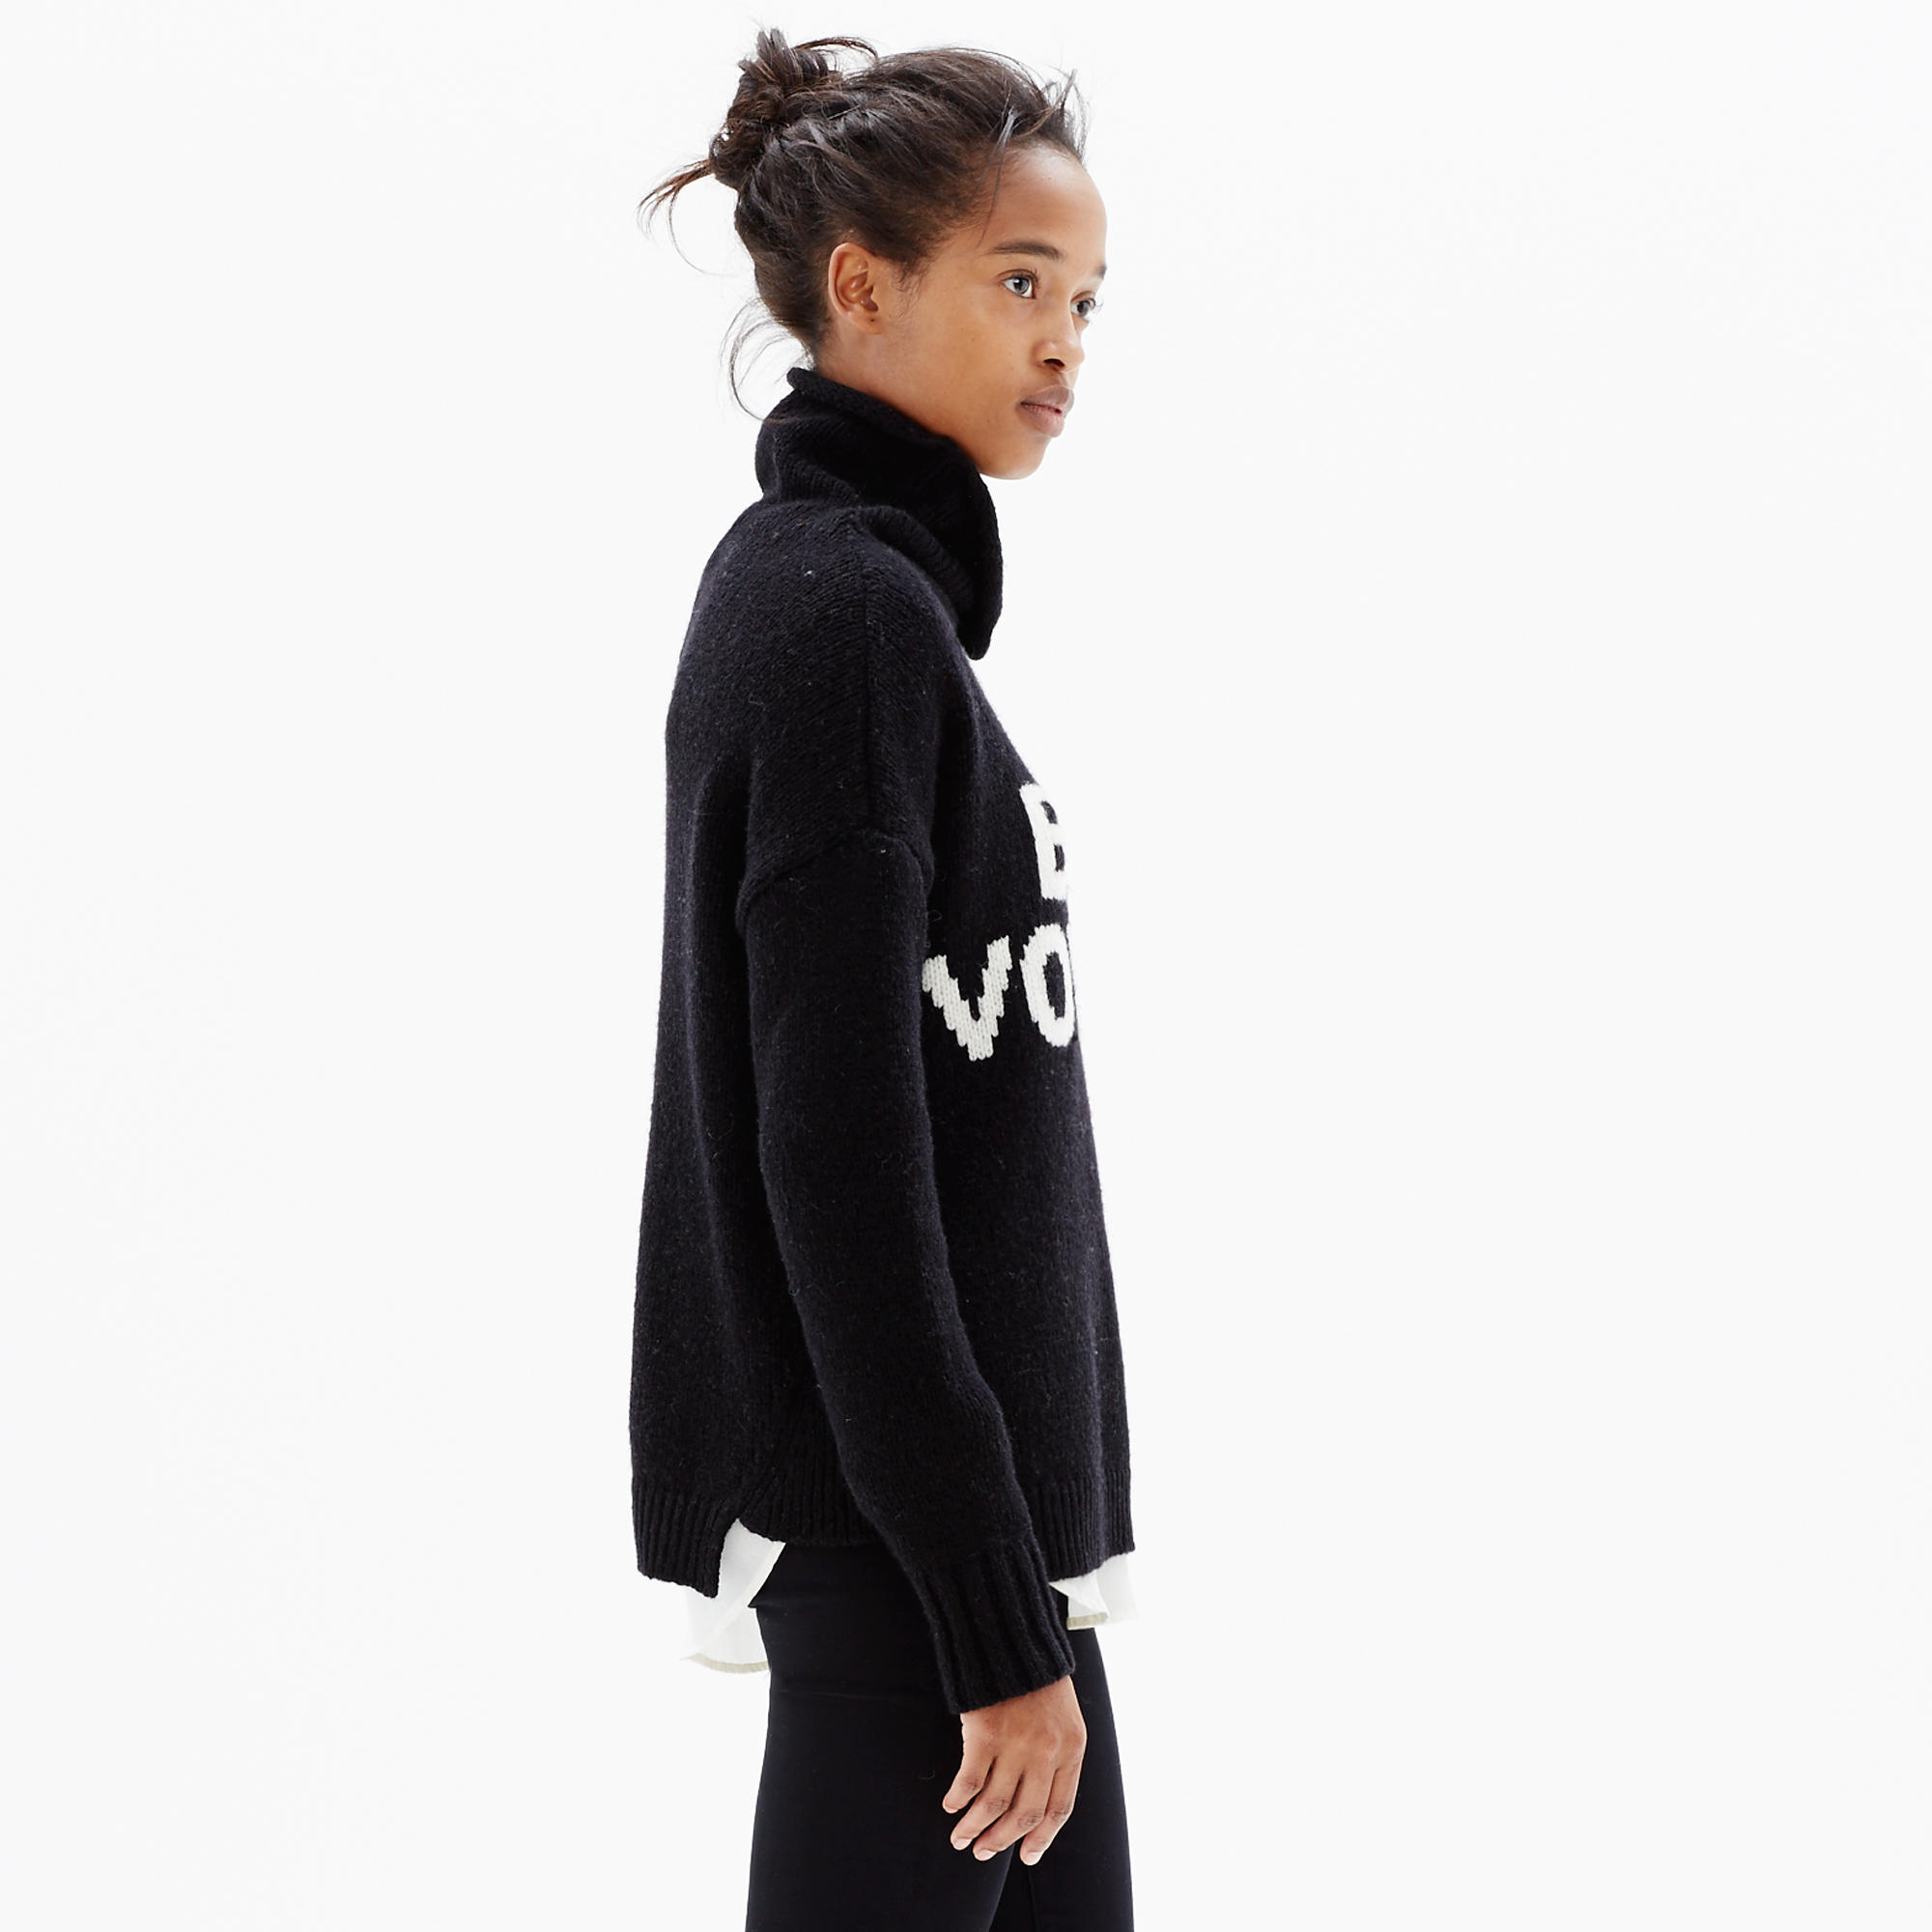 Bon voyage turtleneck sweater